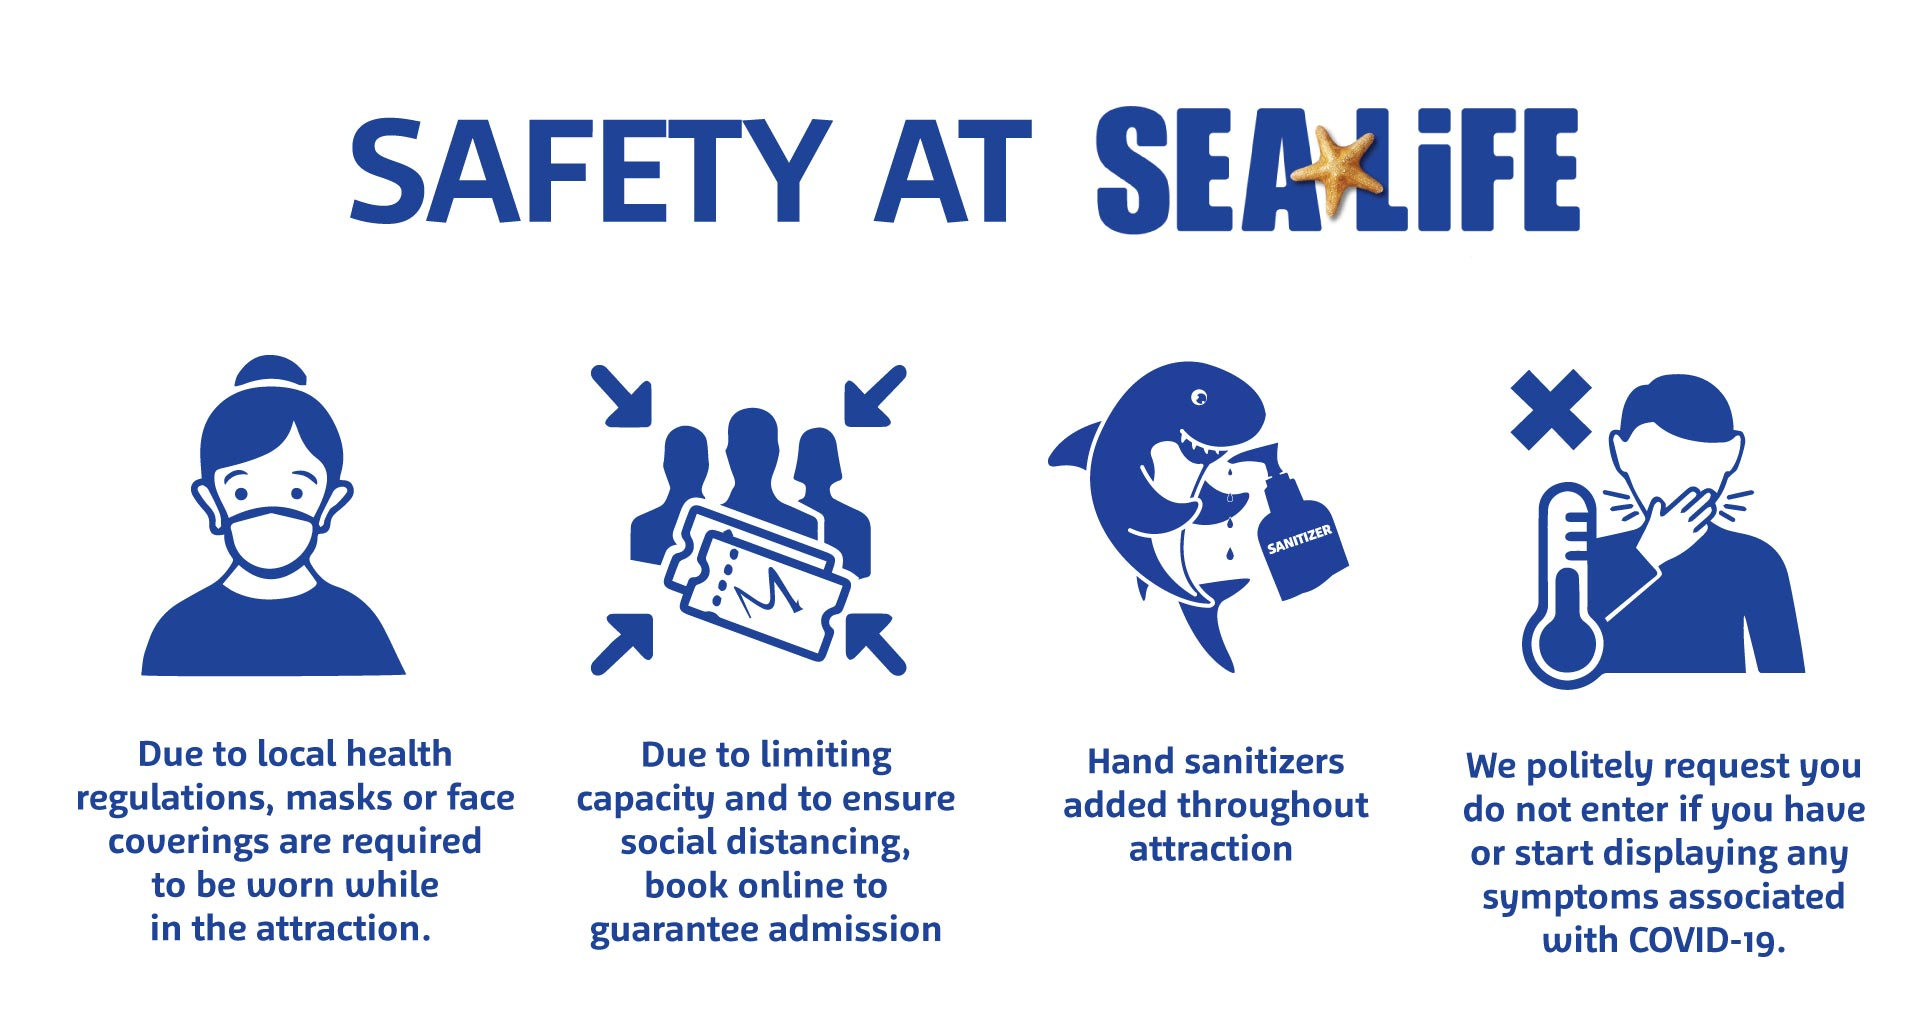 SEA LIFE Safety Michigan Editable Larger File | SEA LIFE Aquarium